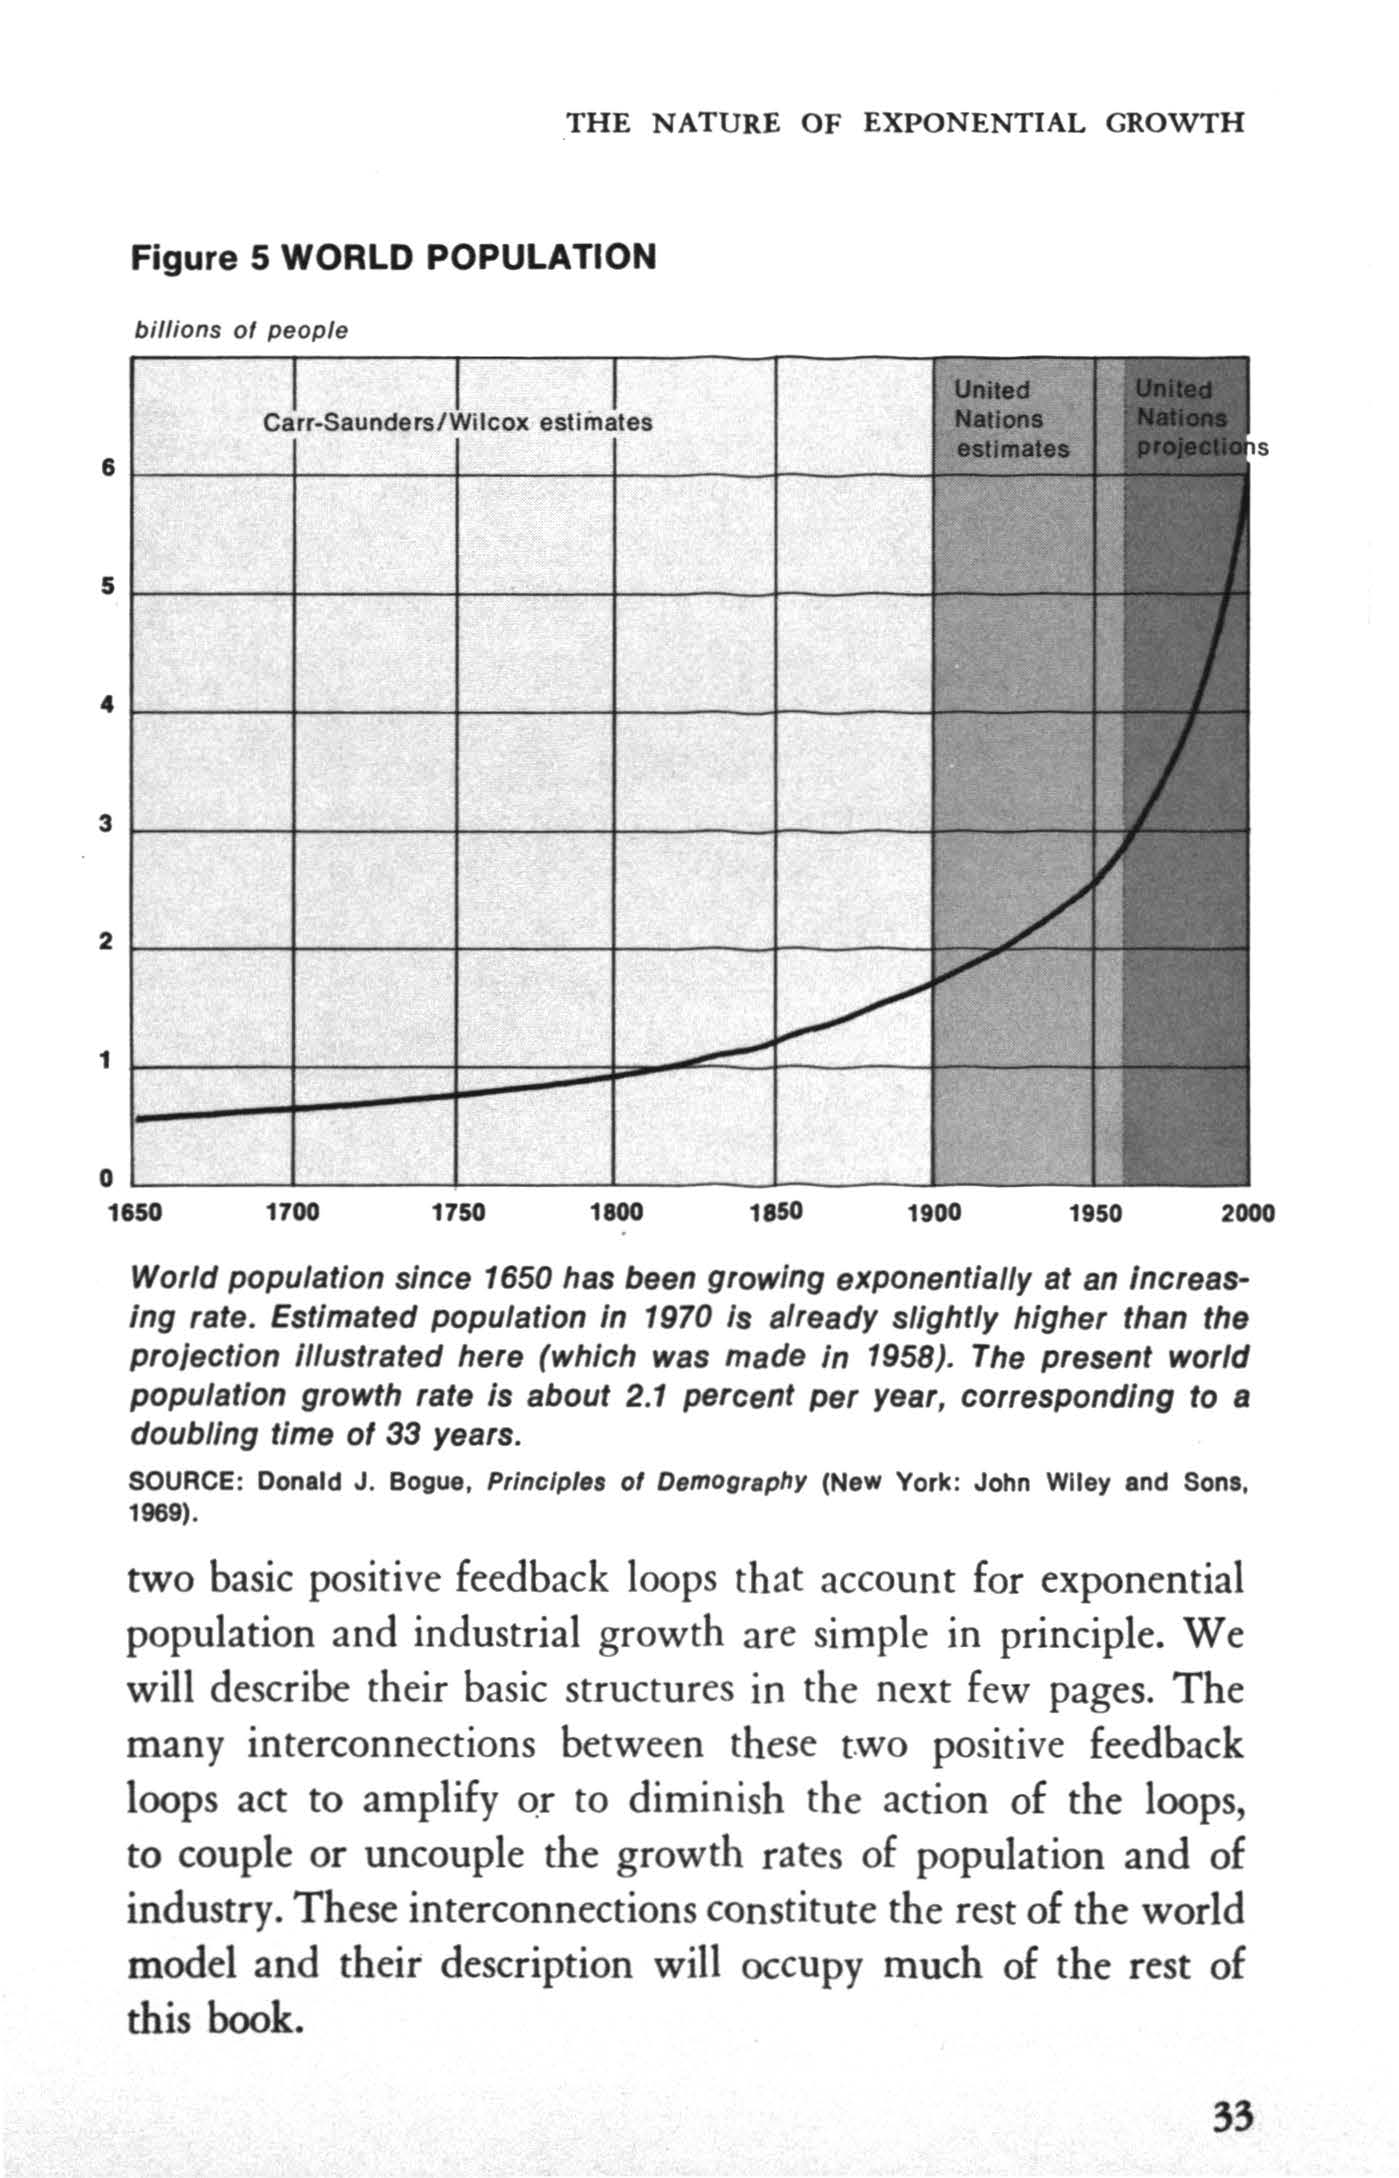 THE NATURE OF EXPONENTAL GROWTH Figure 5 WORLD POPULATON billions ol people 0 1650 1700 1750 1800 1850 1900 1950 2000 World population since 1650 has been growing exponentially at an ncreasing rate.